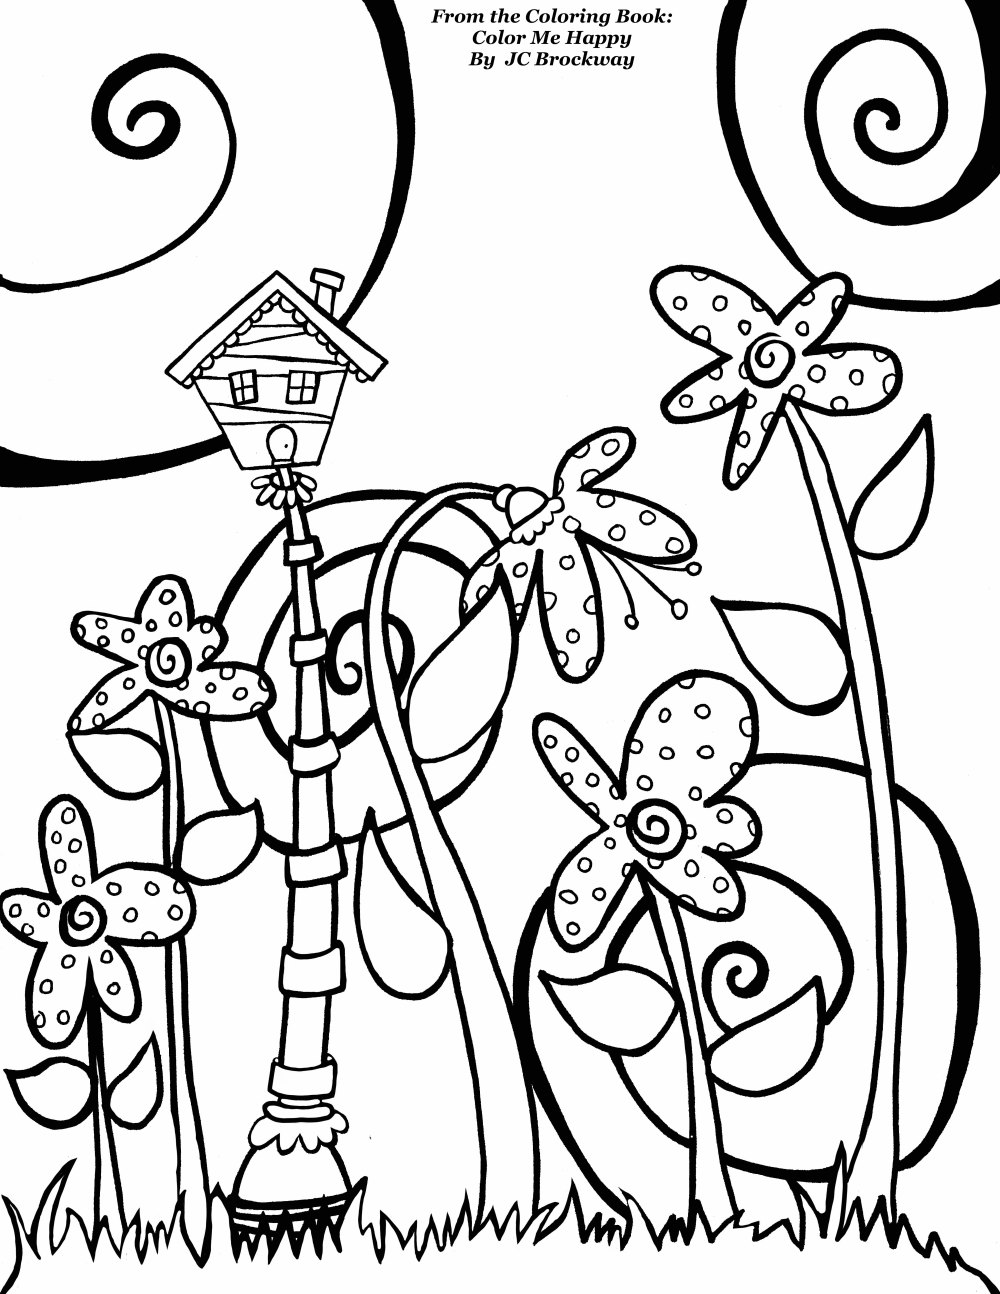 "Free Birdhouse Coloring Page from Adult Coloring Worldwide. From the coloring book ""Color Me Happy"" by J C Brockway whimsical doodle art"